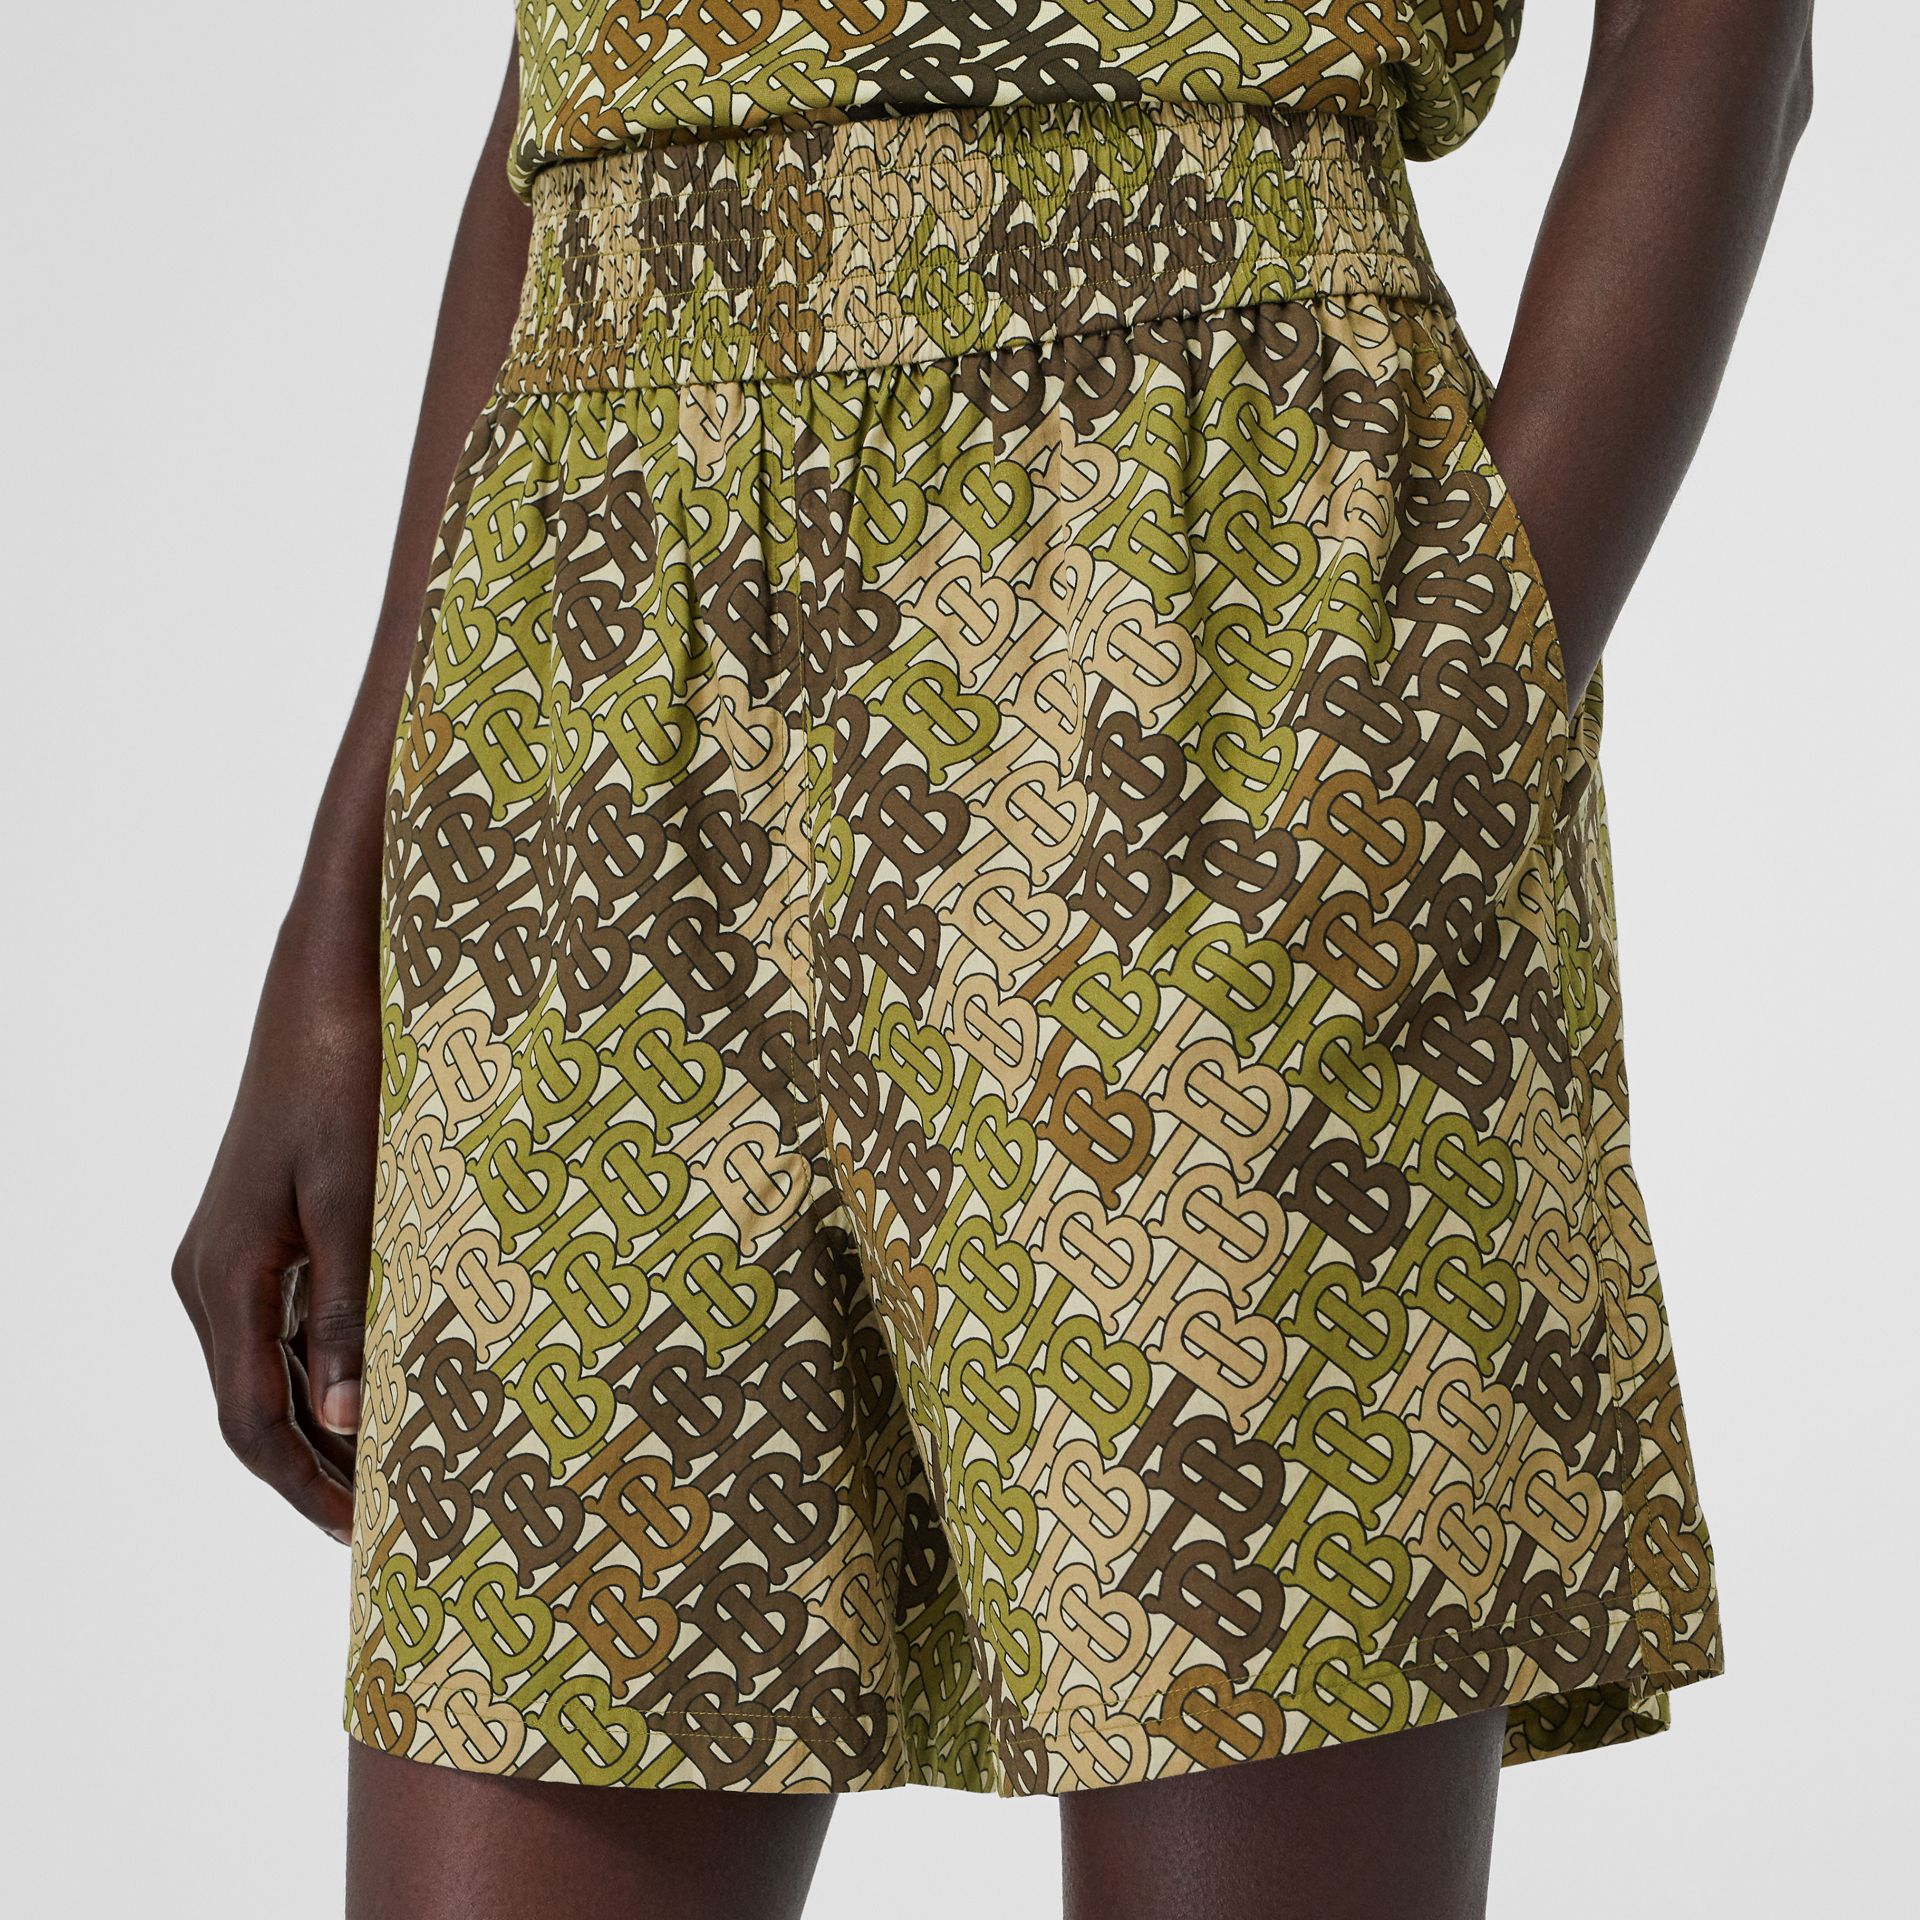 Monogram Print Cotton Poplin Shorts in Khaki Green - Women | Burberry - gallery image 1